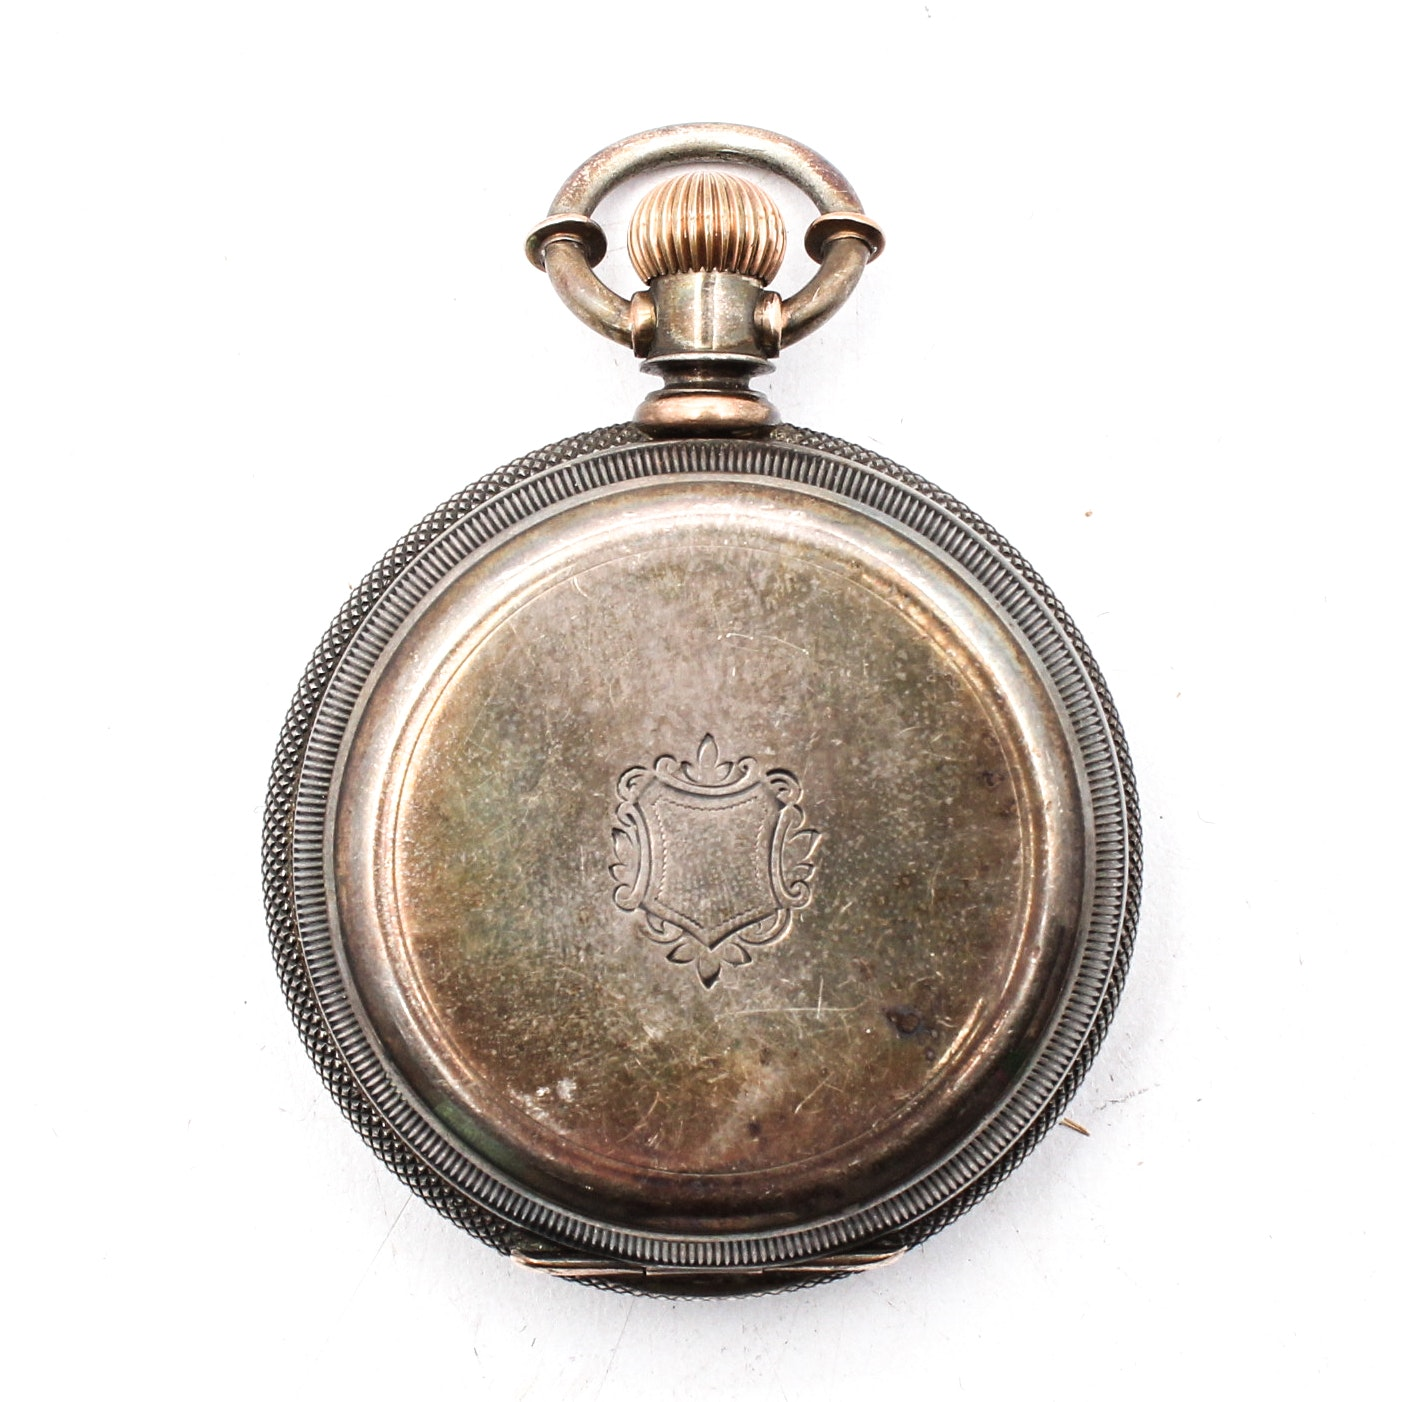 American Watch Company 1877 Sterling Silver Pocket Watch